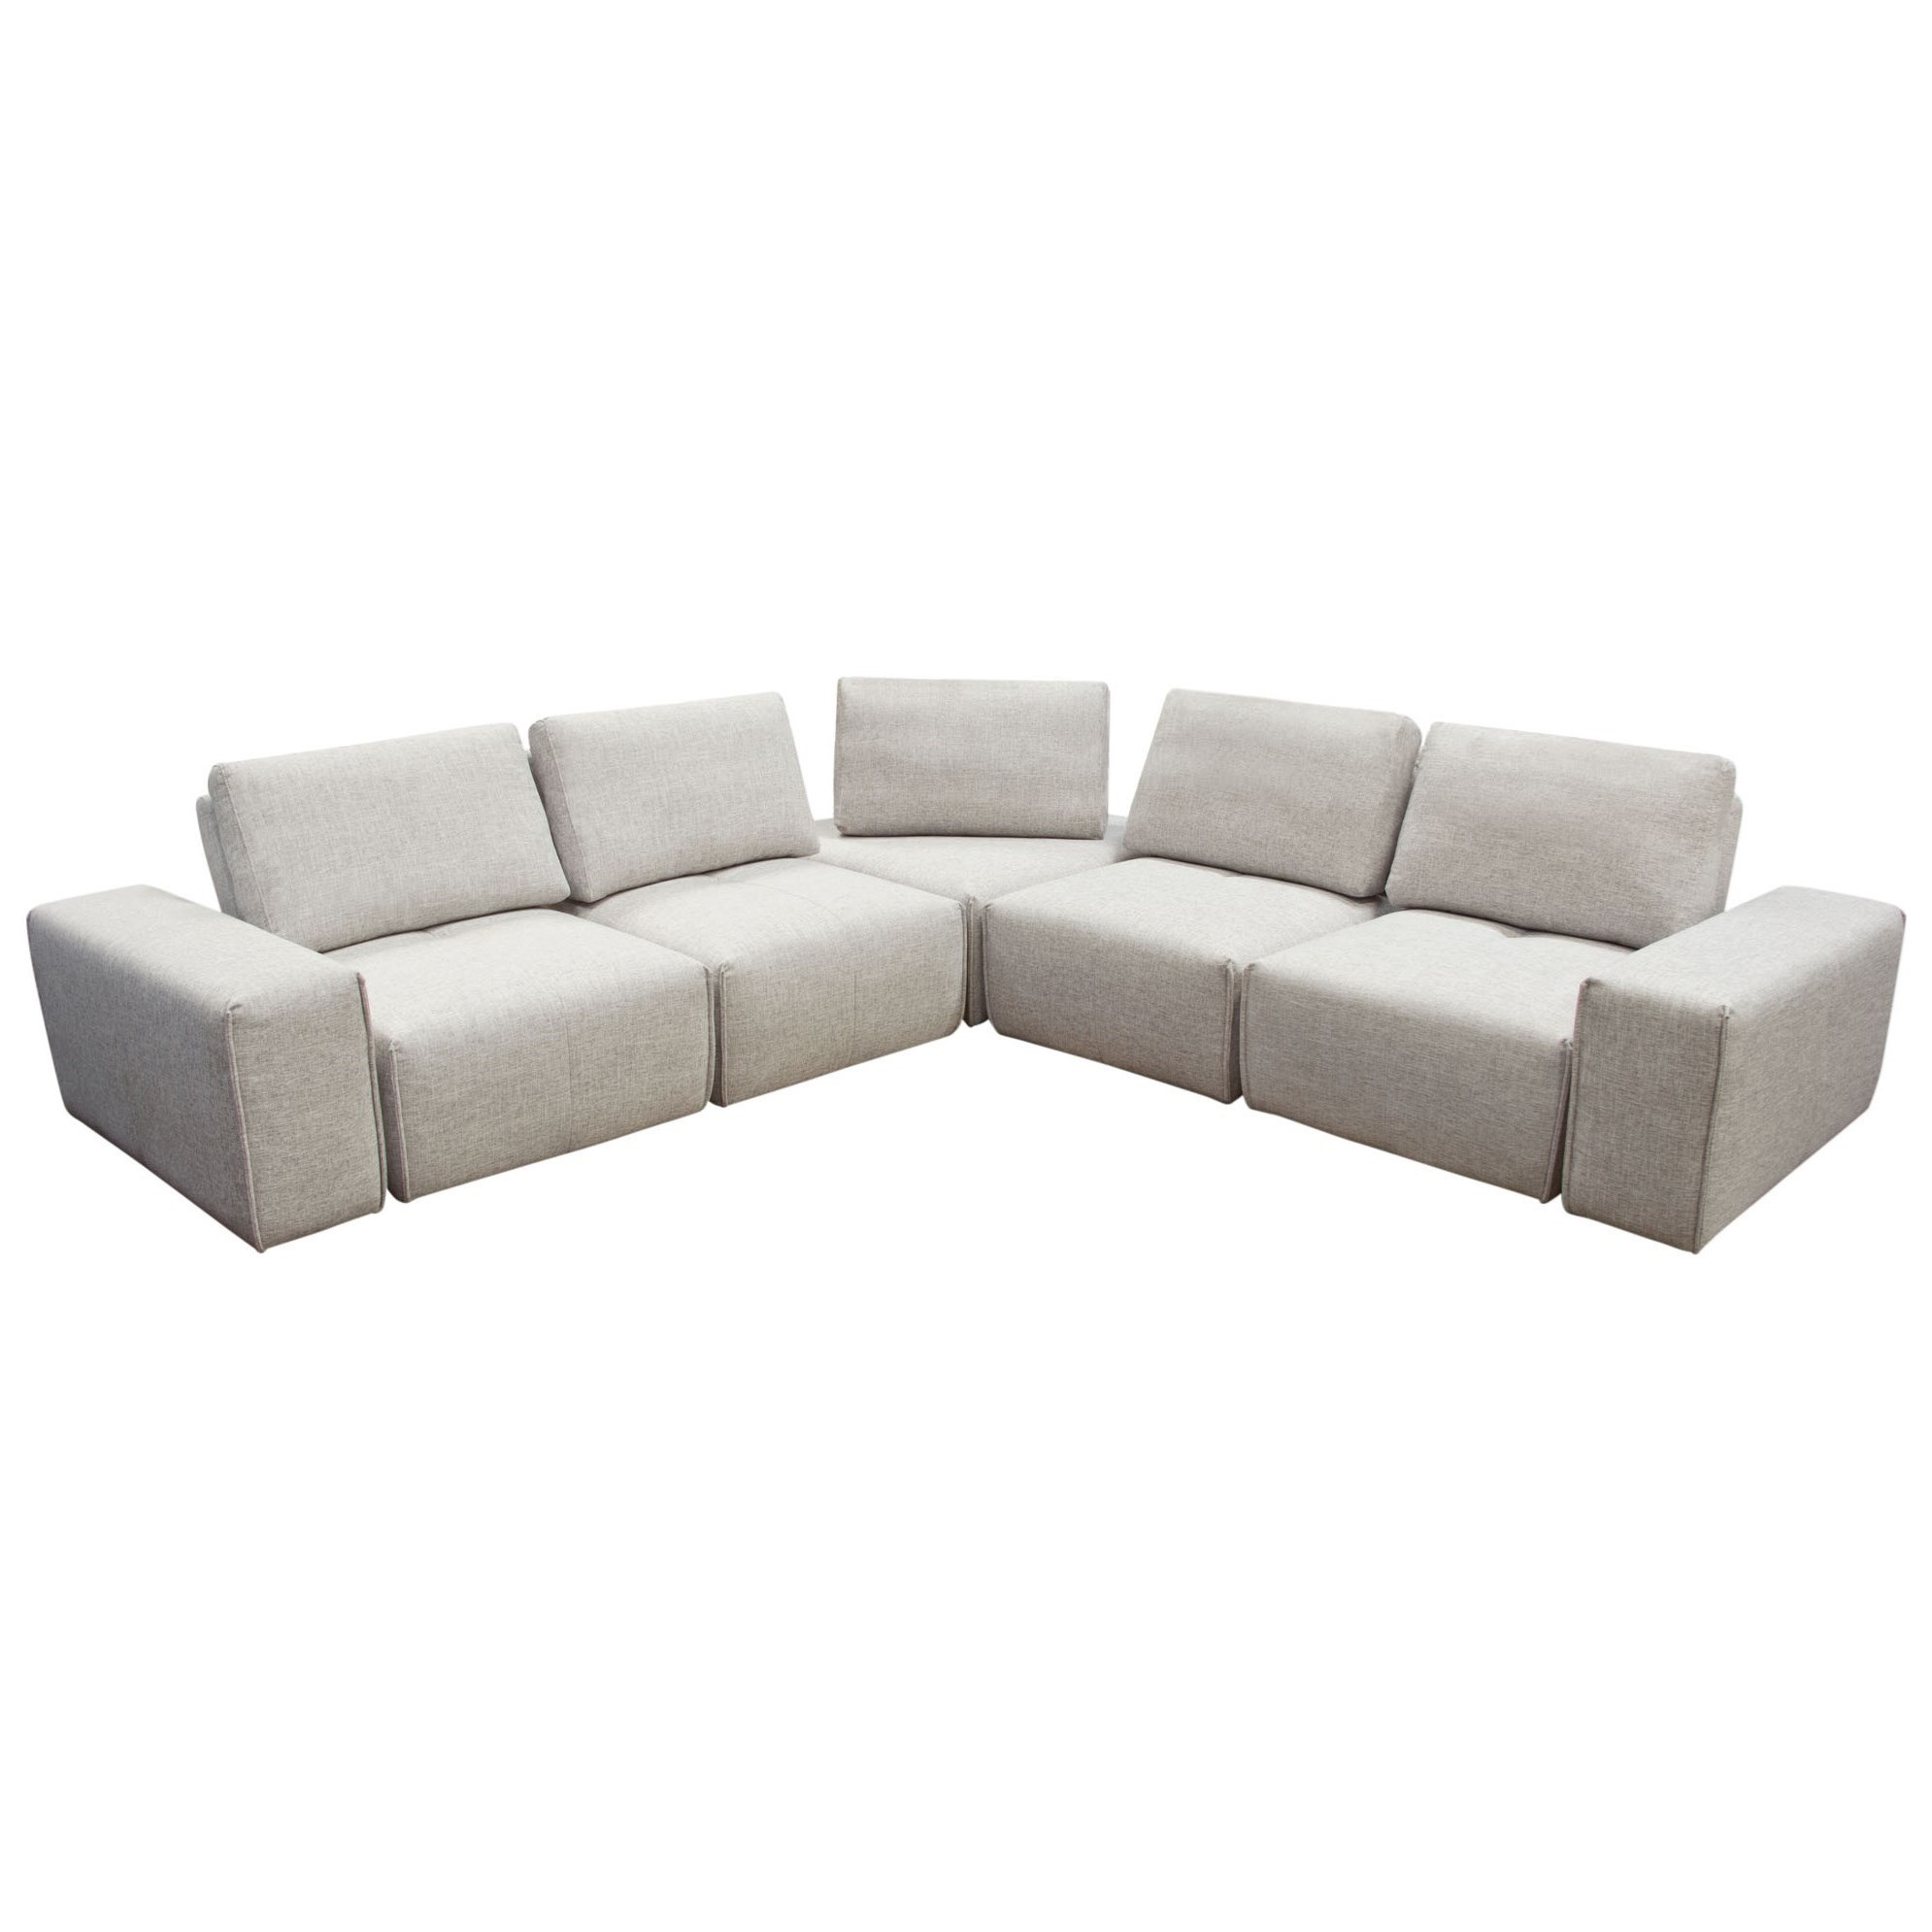 jazz sofa review cushions on leather sofas living room furniture ibiza home ideas